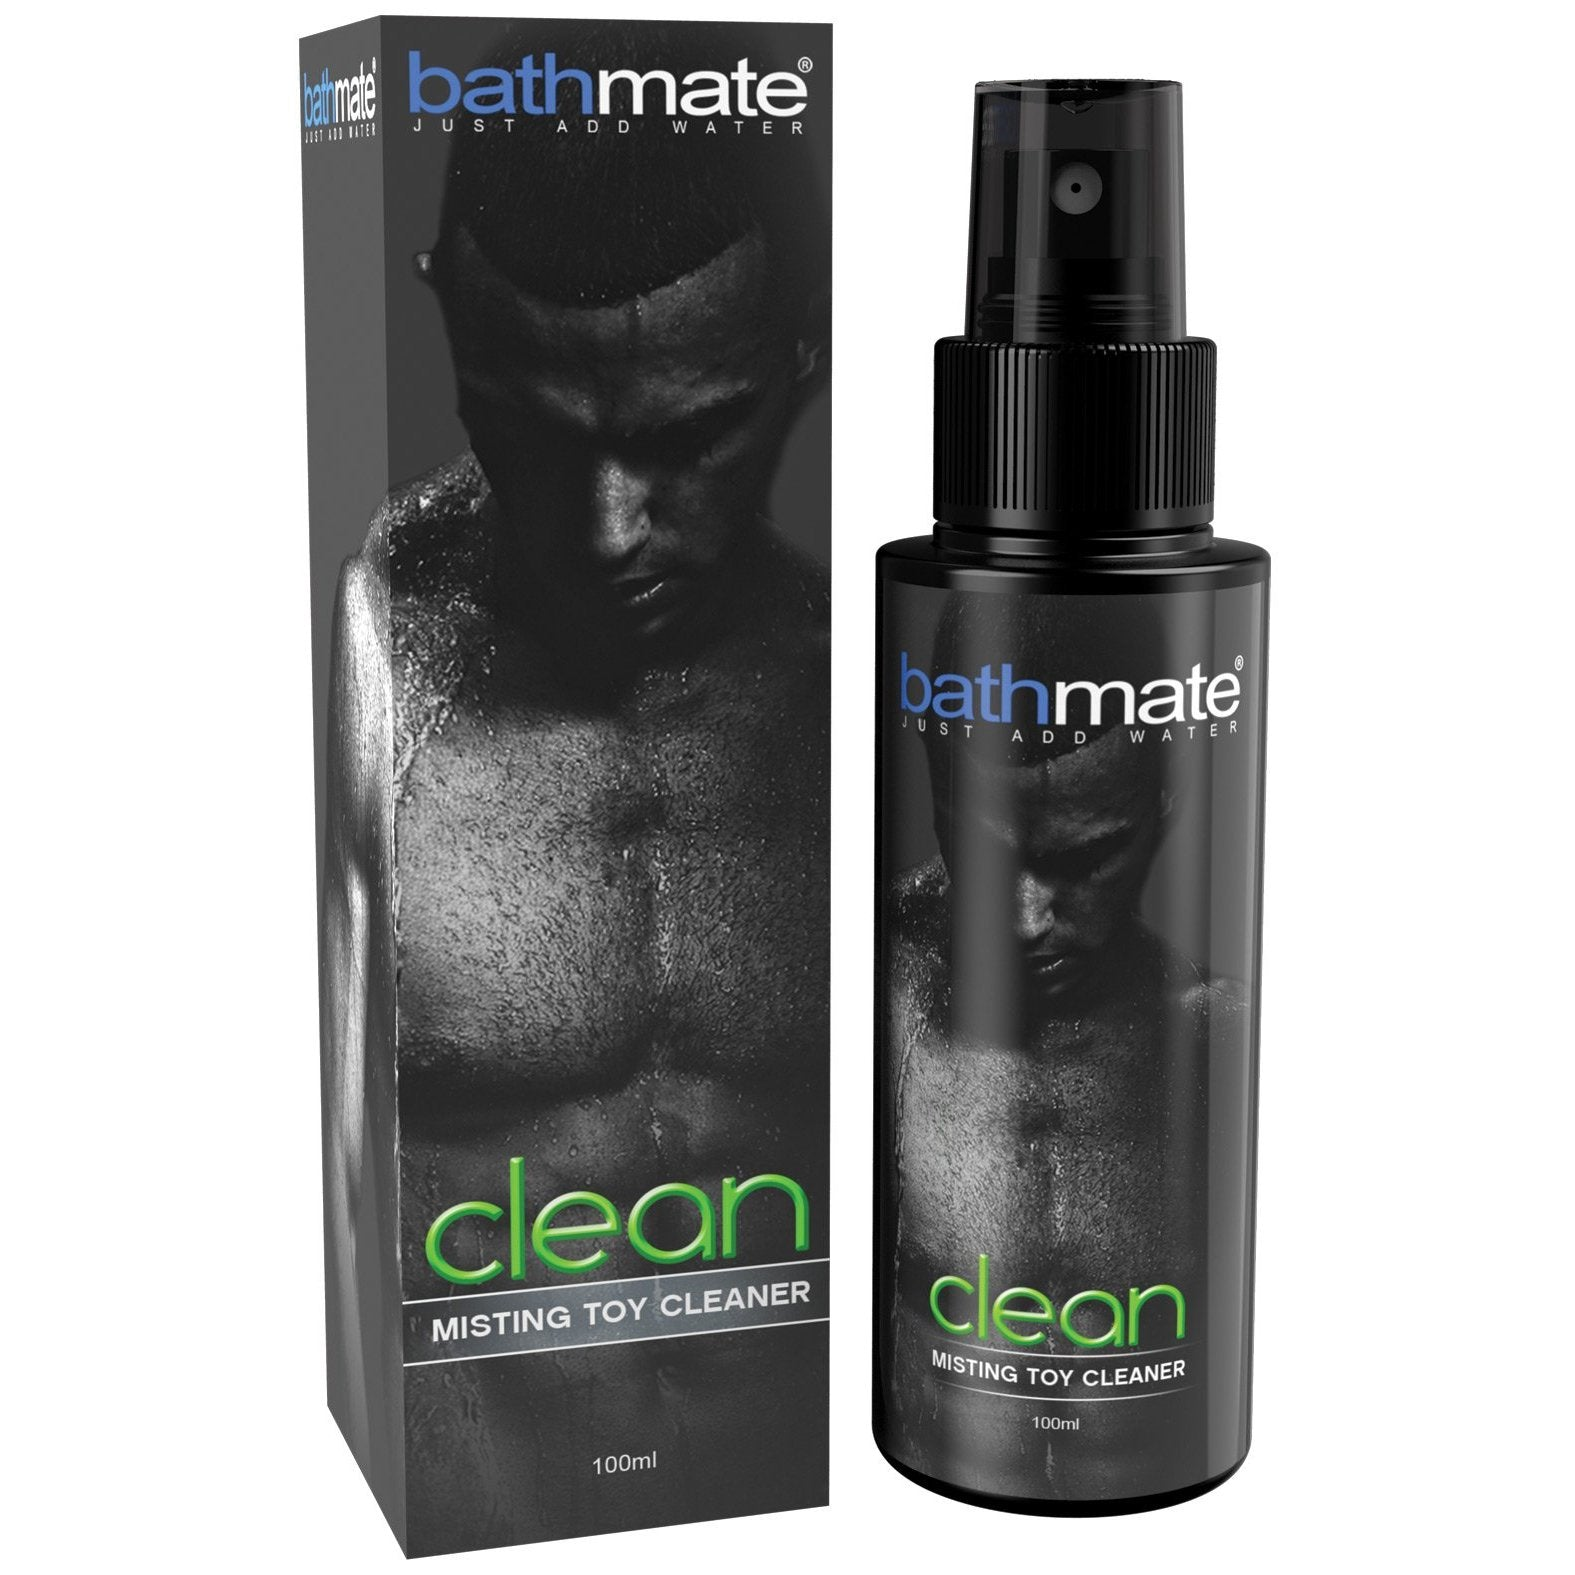 Bathmate Clean Misting Toy Cleaner - Gay Men's Sex Toys - Adam's Toy Box